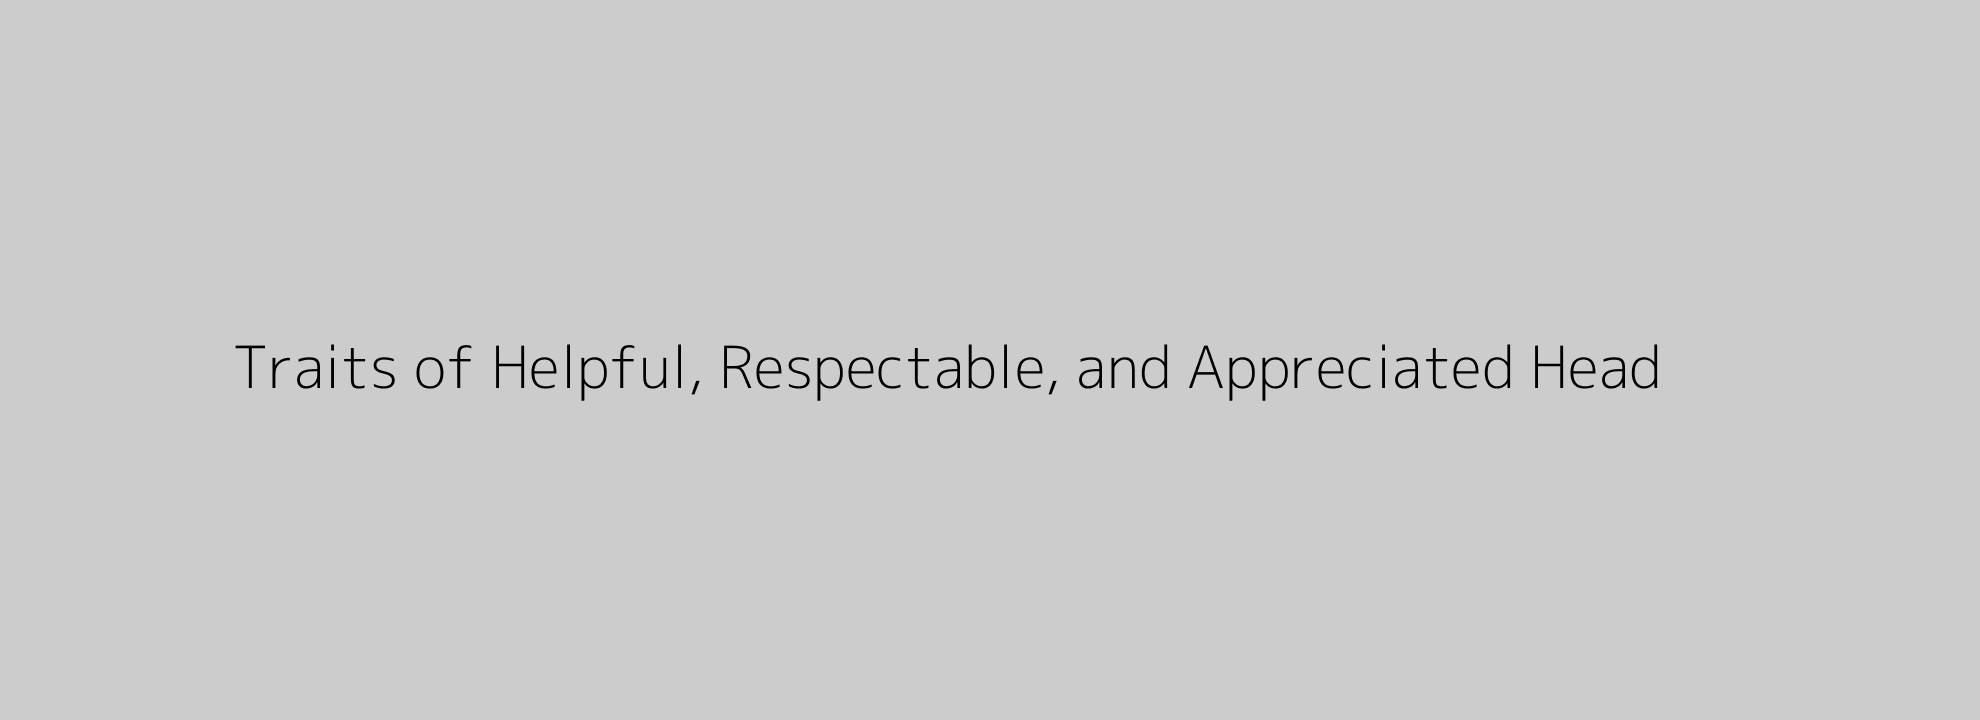 Traits of Helpful, Respectable, and Appreciated Head